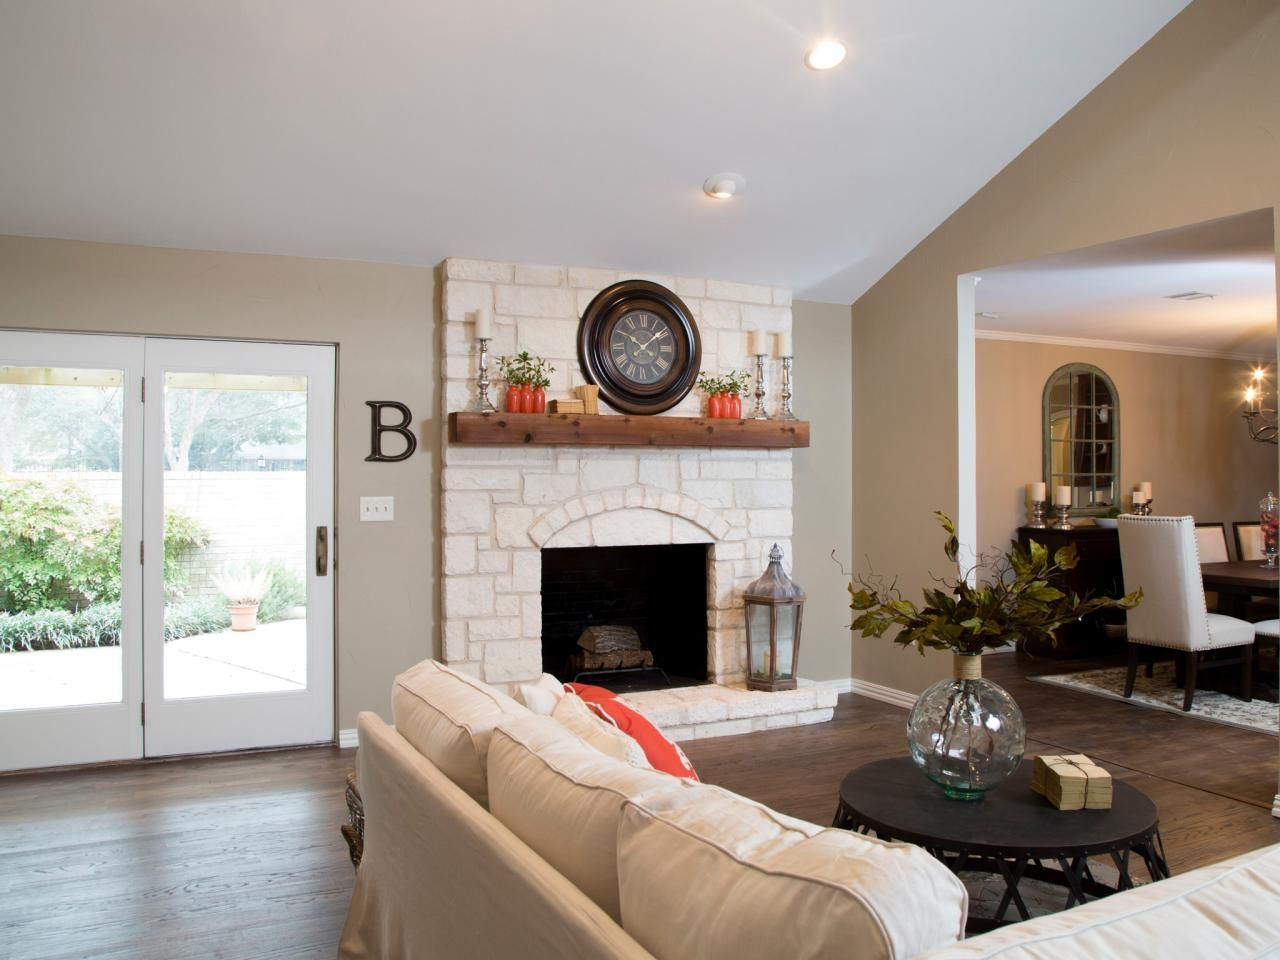 Joanna Gaines Fixer Upper HGTV Fireplaces